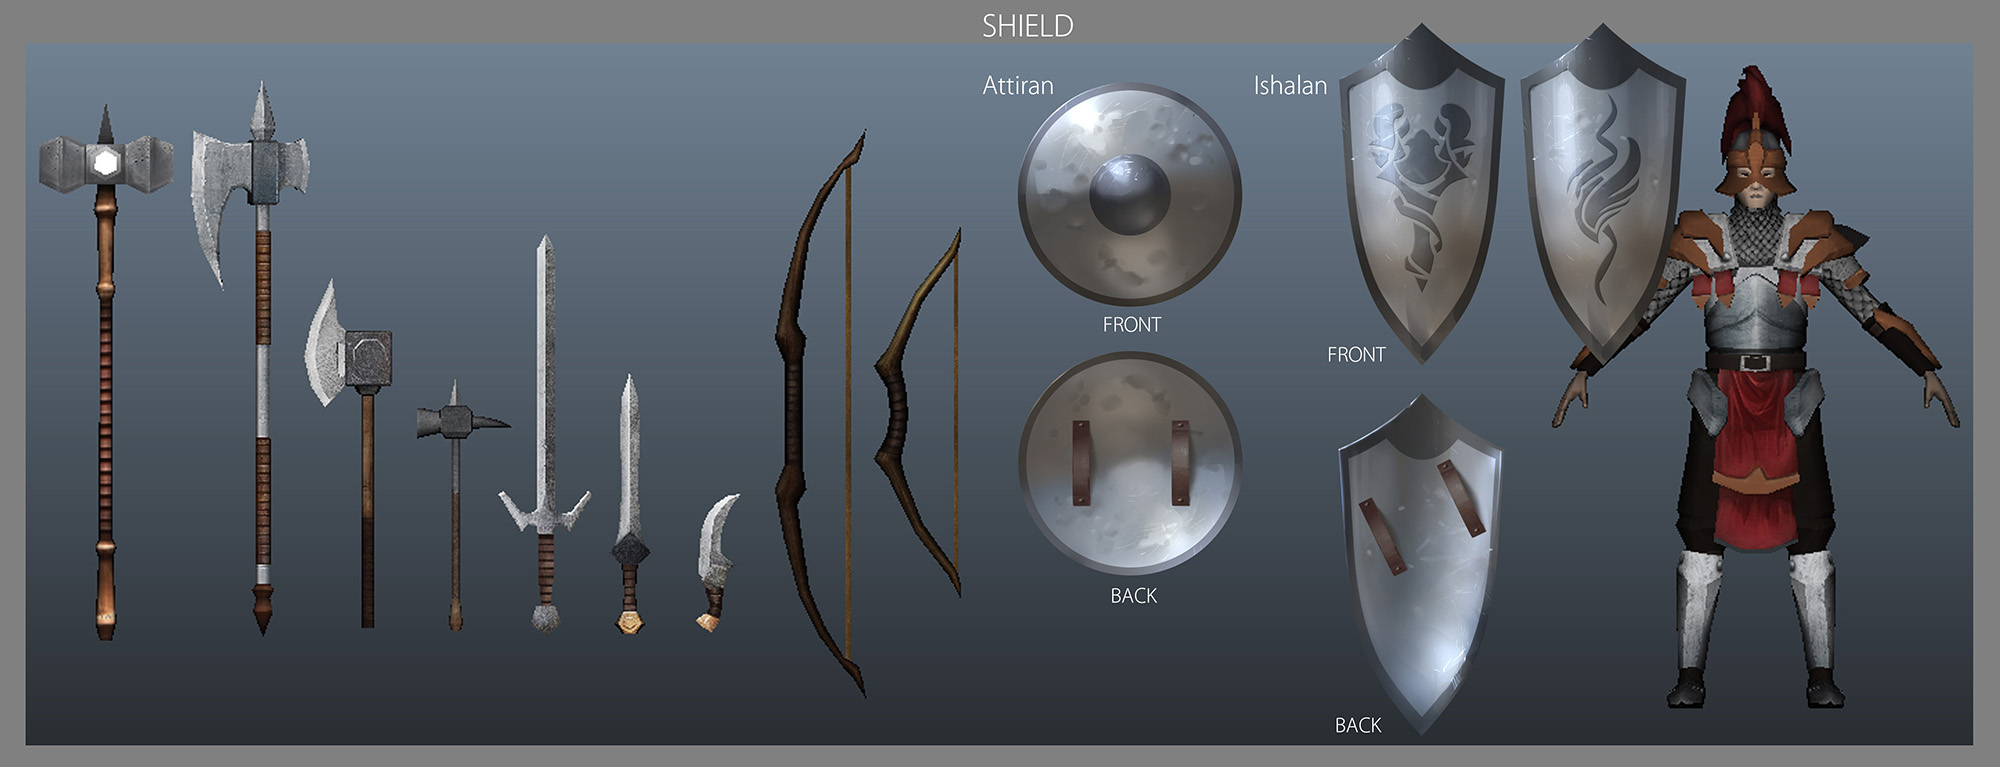 Items_Weapons_Shield.jpg